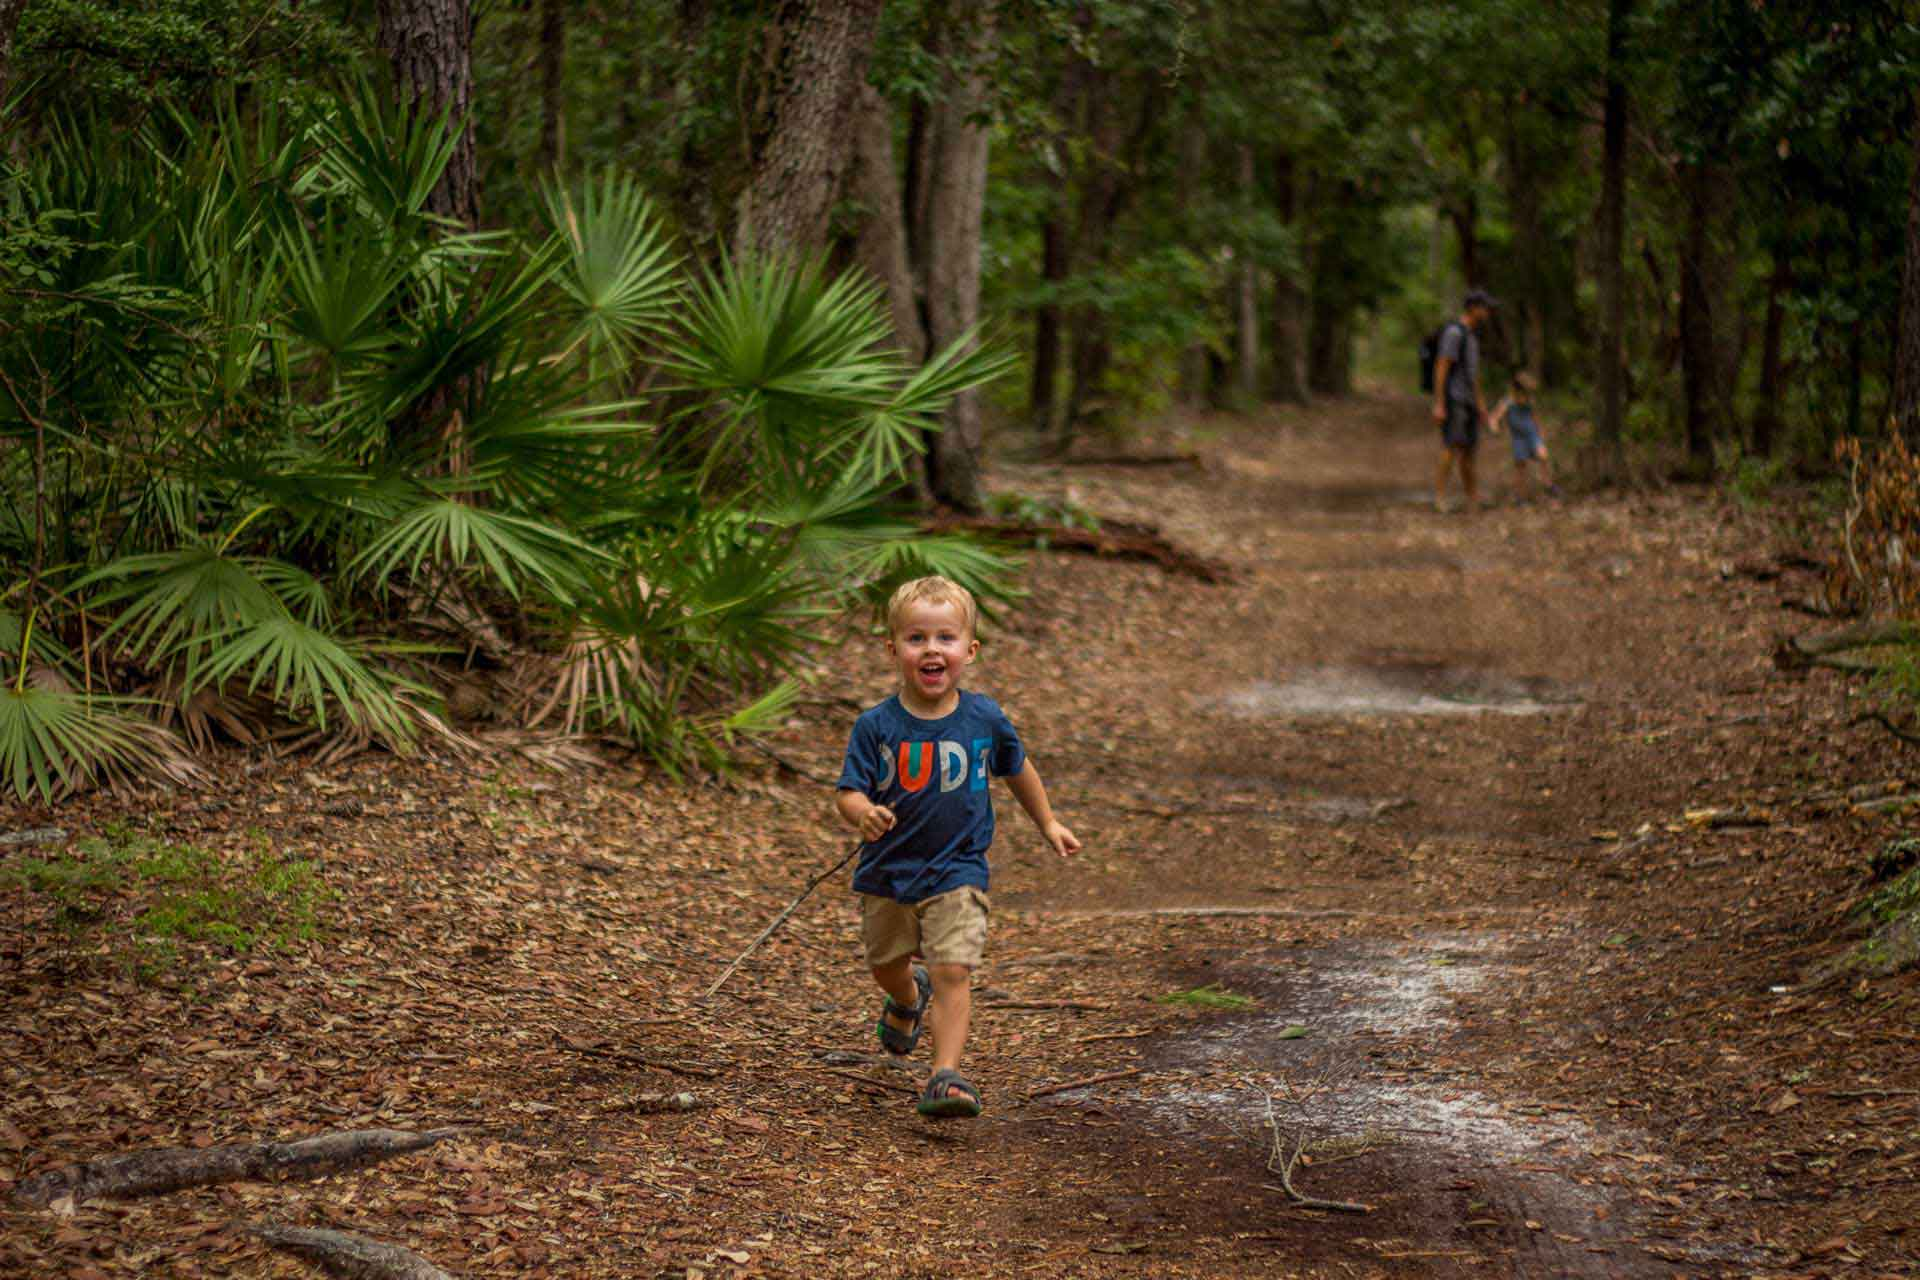 Family Can Travel - 2 Days in Savannah with Kids - Enjoying a short hike at Wormsloe Historic Site